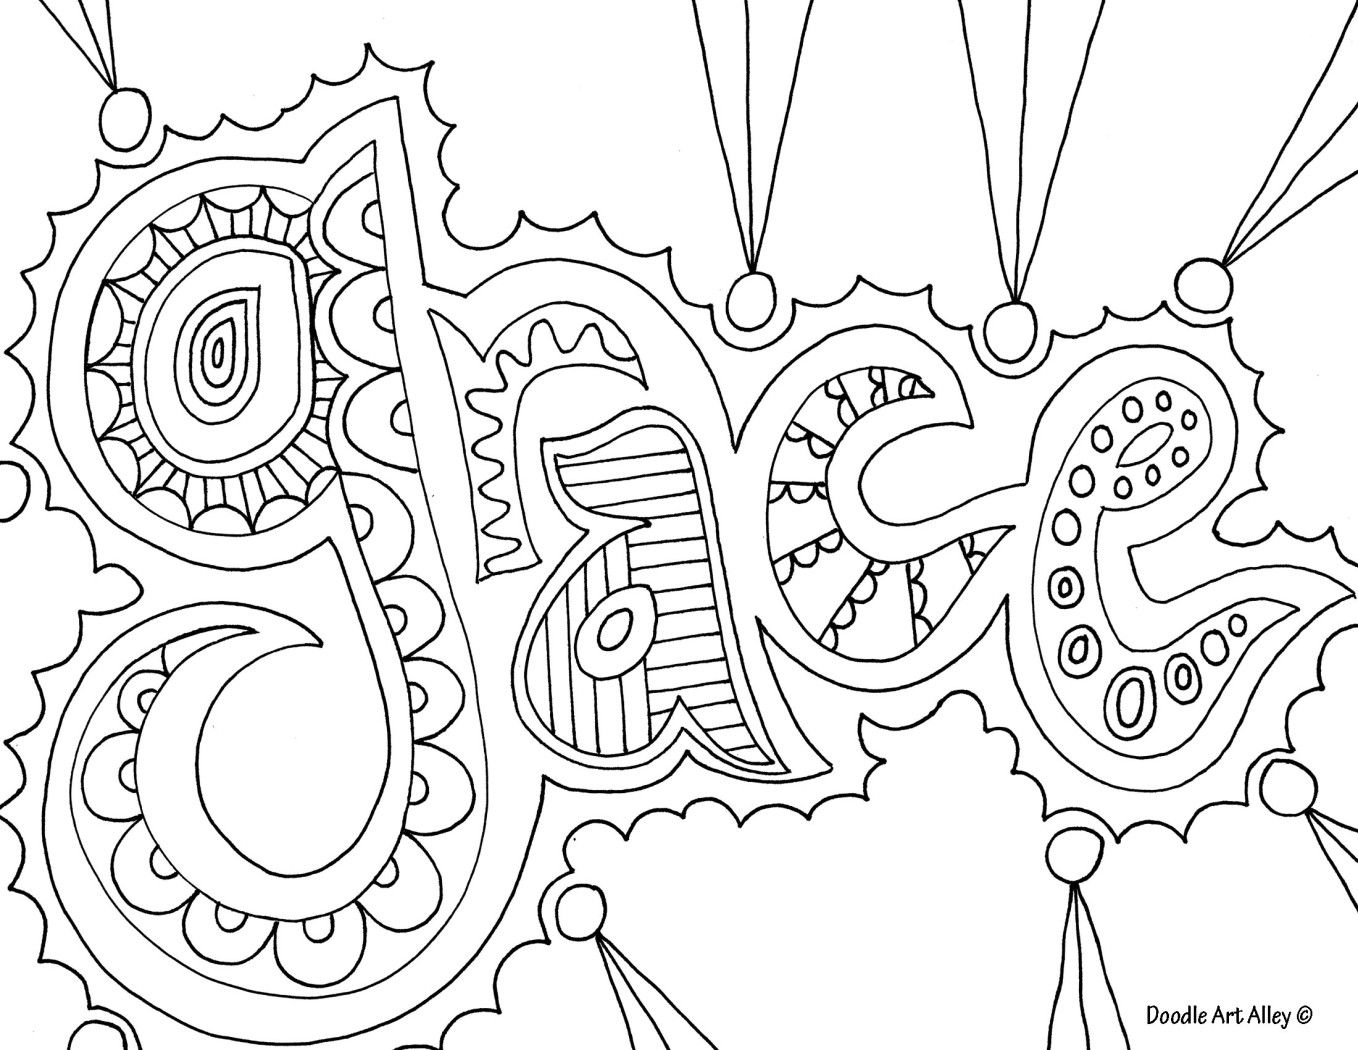 free teenage coloring pages - doodle art grace nice coloring page for older kids